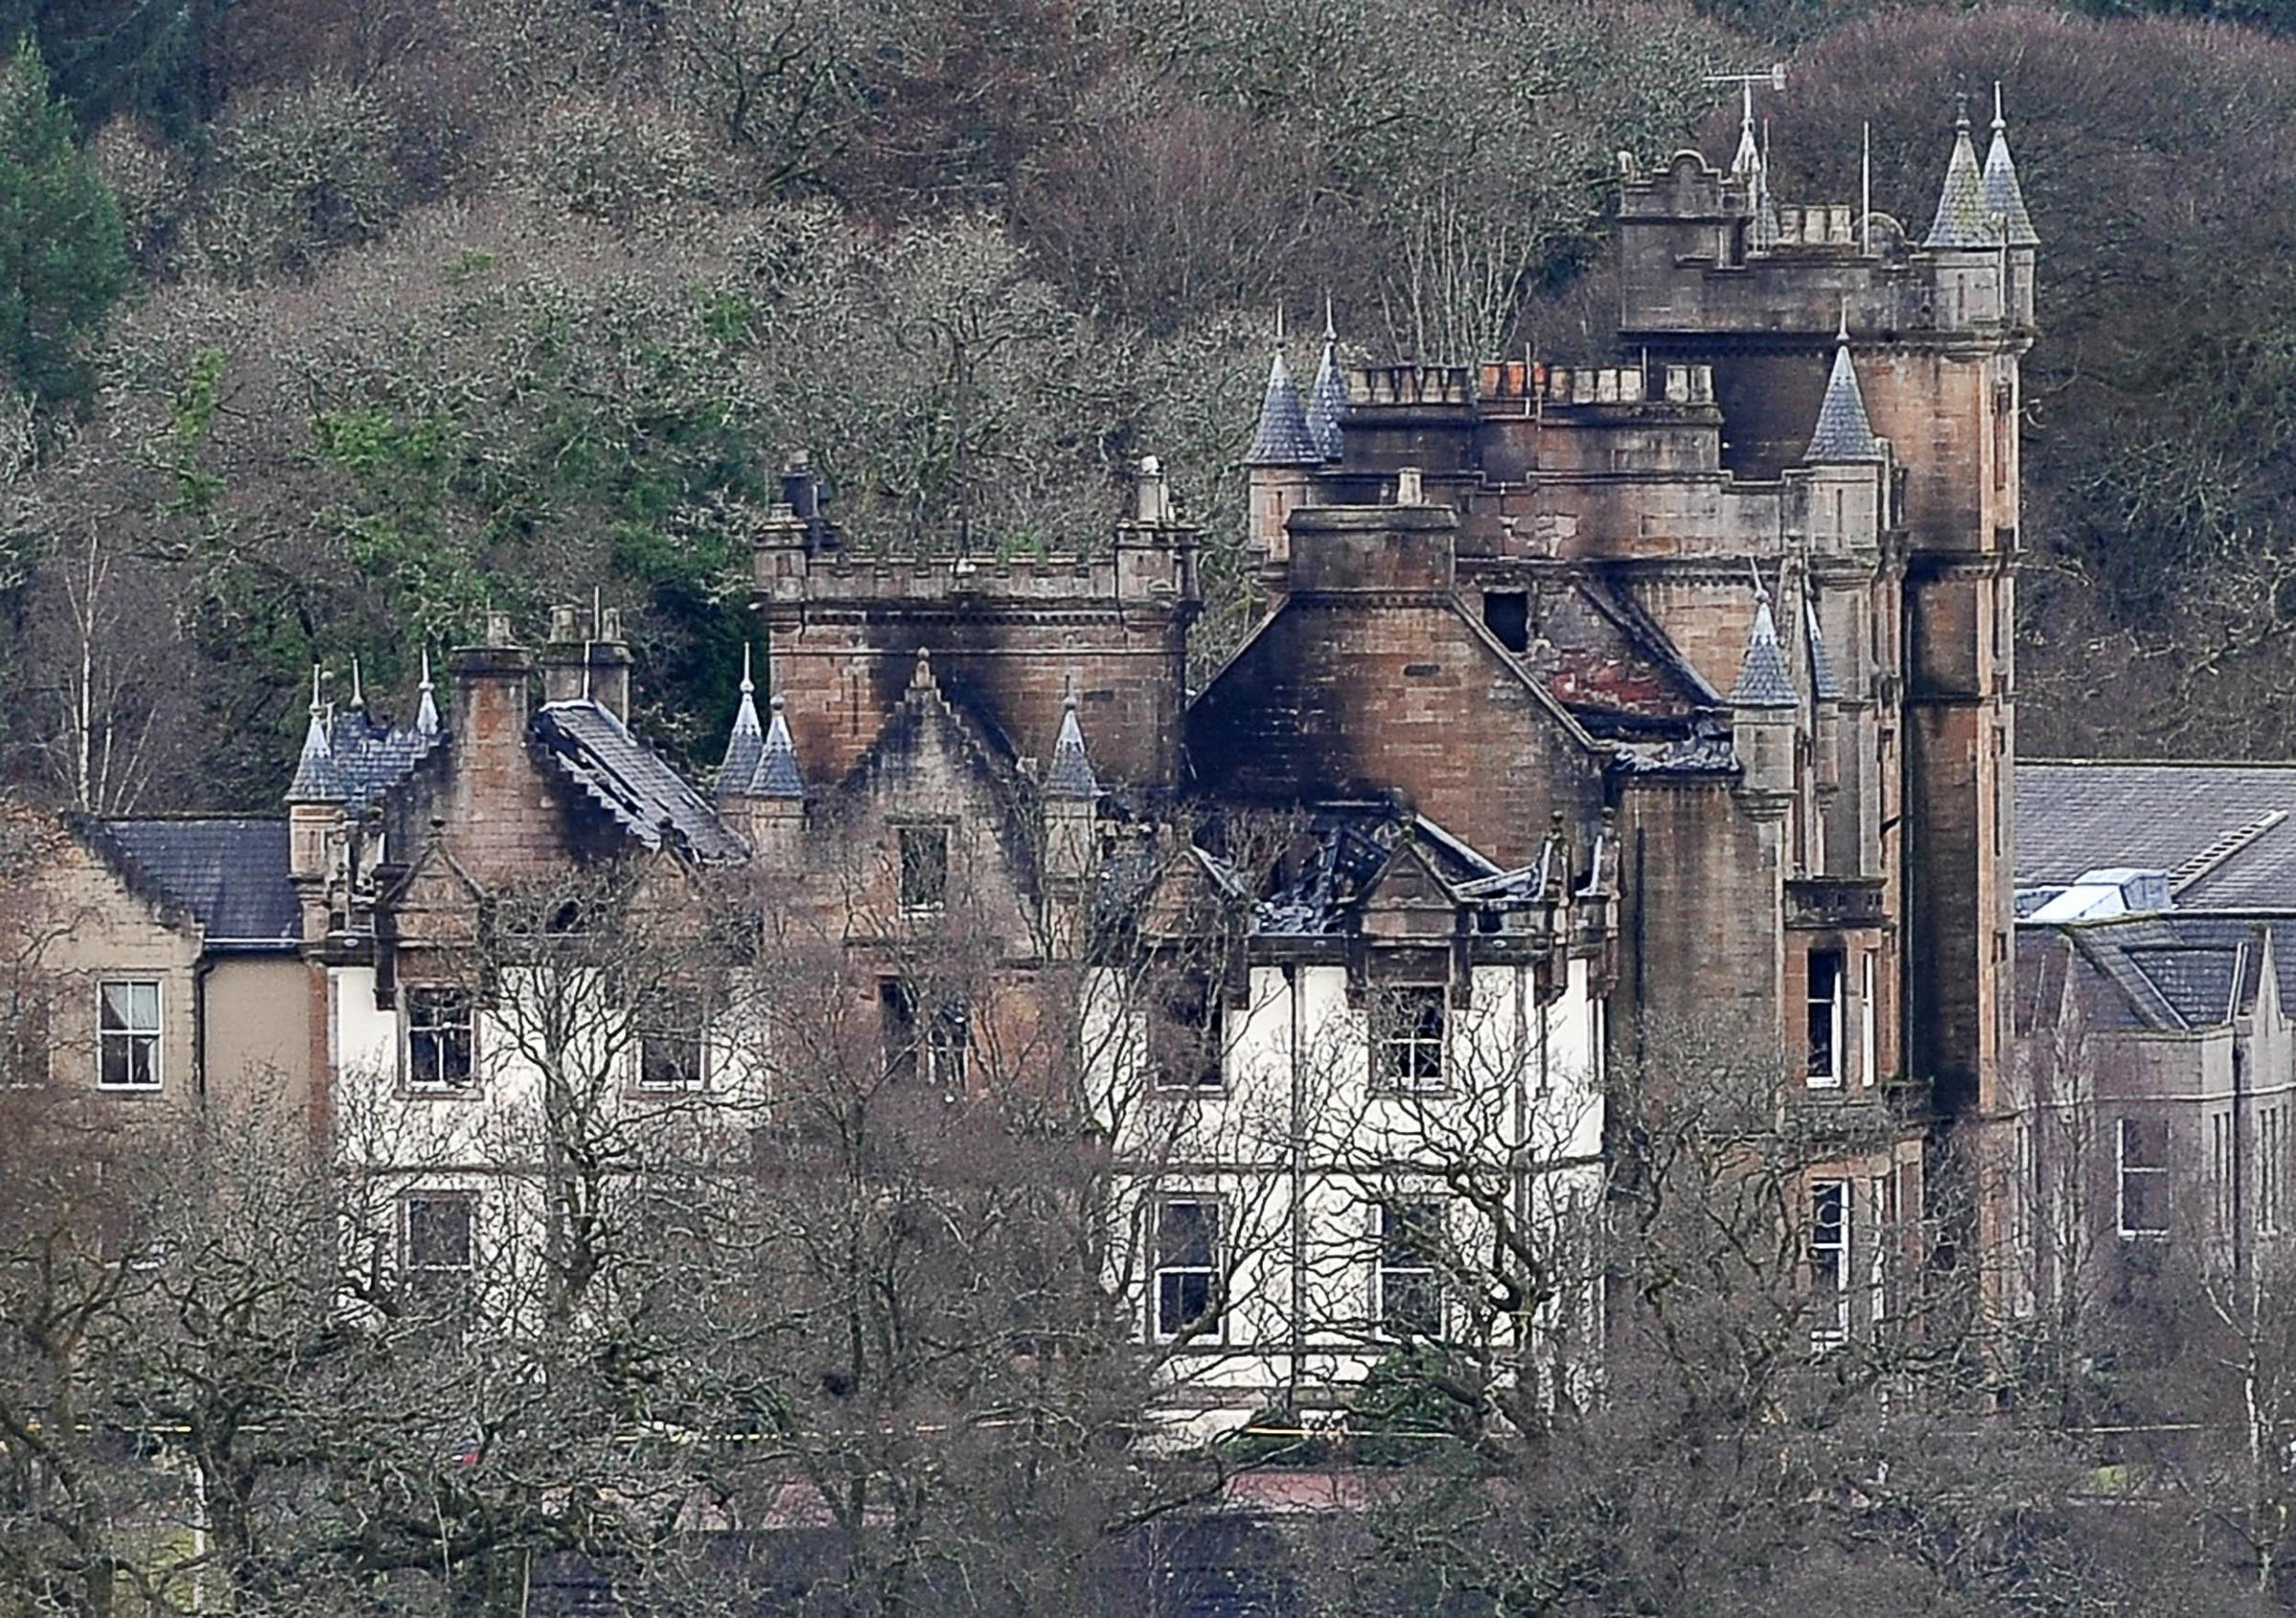 The blackened shell of the Cameron House Hotel after it was badly damaged by fire on December 18, 2017